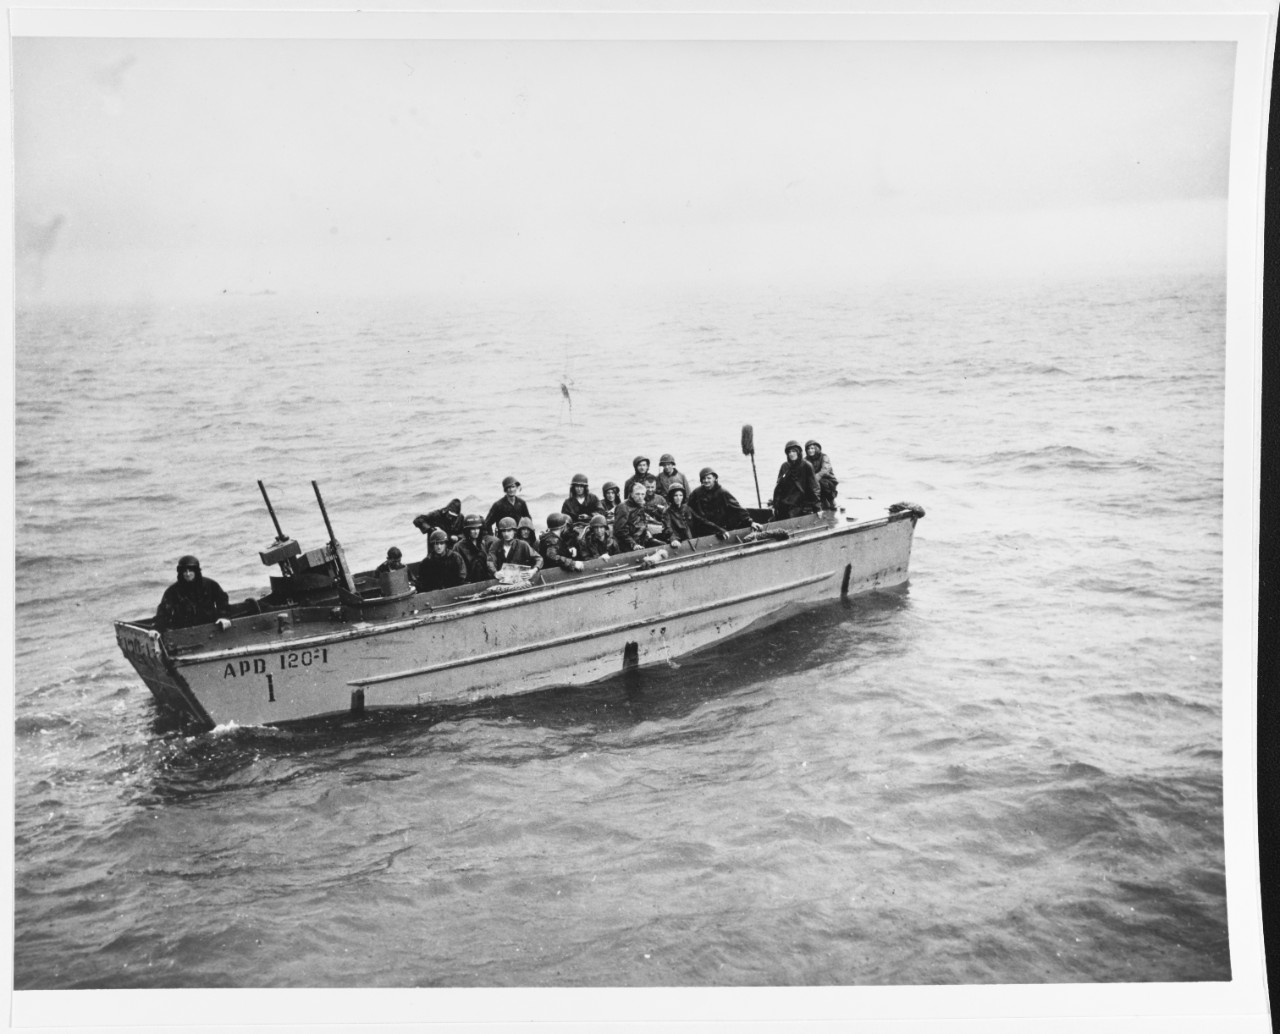 """Underwater demolition team swimmers wait in the rain to be taken aboard their fast transport, off Balikpapan, 3 July 1945. The swab mounted on the stern of their LCP(R) means """"Clean sweep, day's work done"""". They are watching casualties going aboard from another LCP(R). Boat is from USS KLINE (APD-120). Photographed by Lieutenant Junior Grade C.F. Waterman. 80-G-274686"""